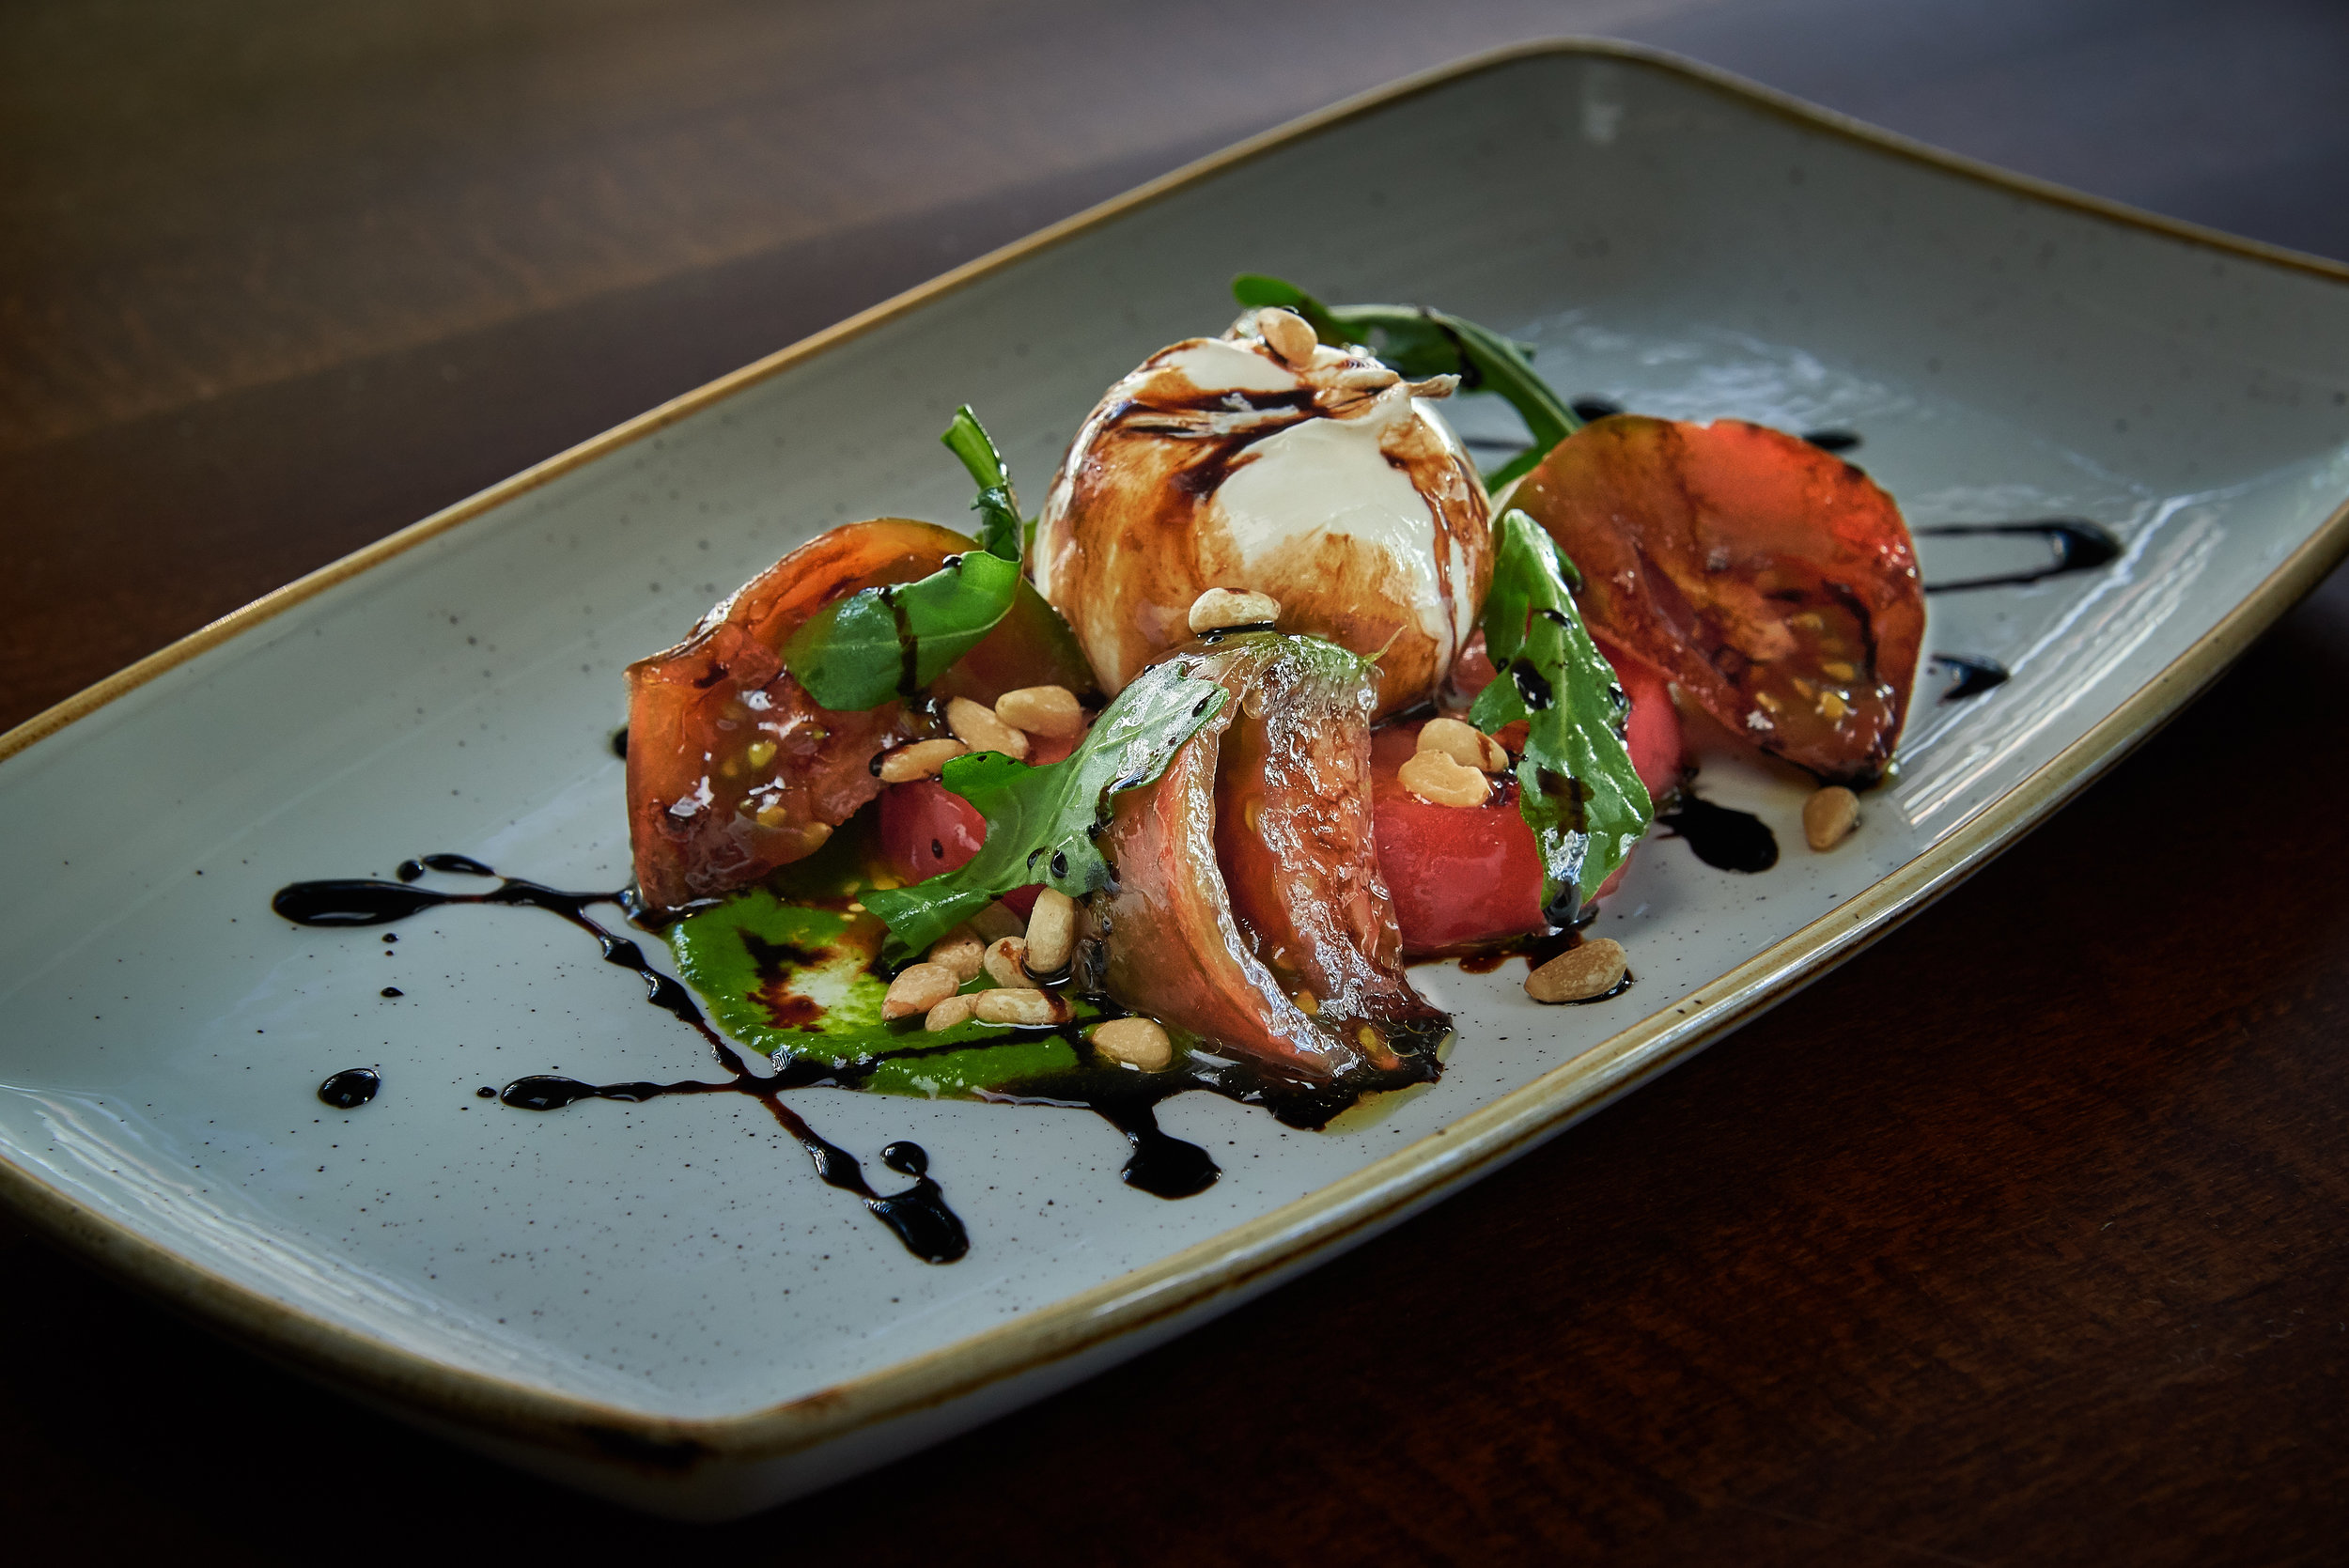 Professional food photo of a delicious salad made with tomato, arugula, pine nuts, fresh mozzarella and balsamic vinegar. Commercial photography